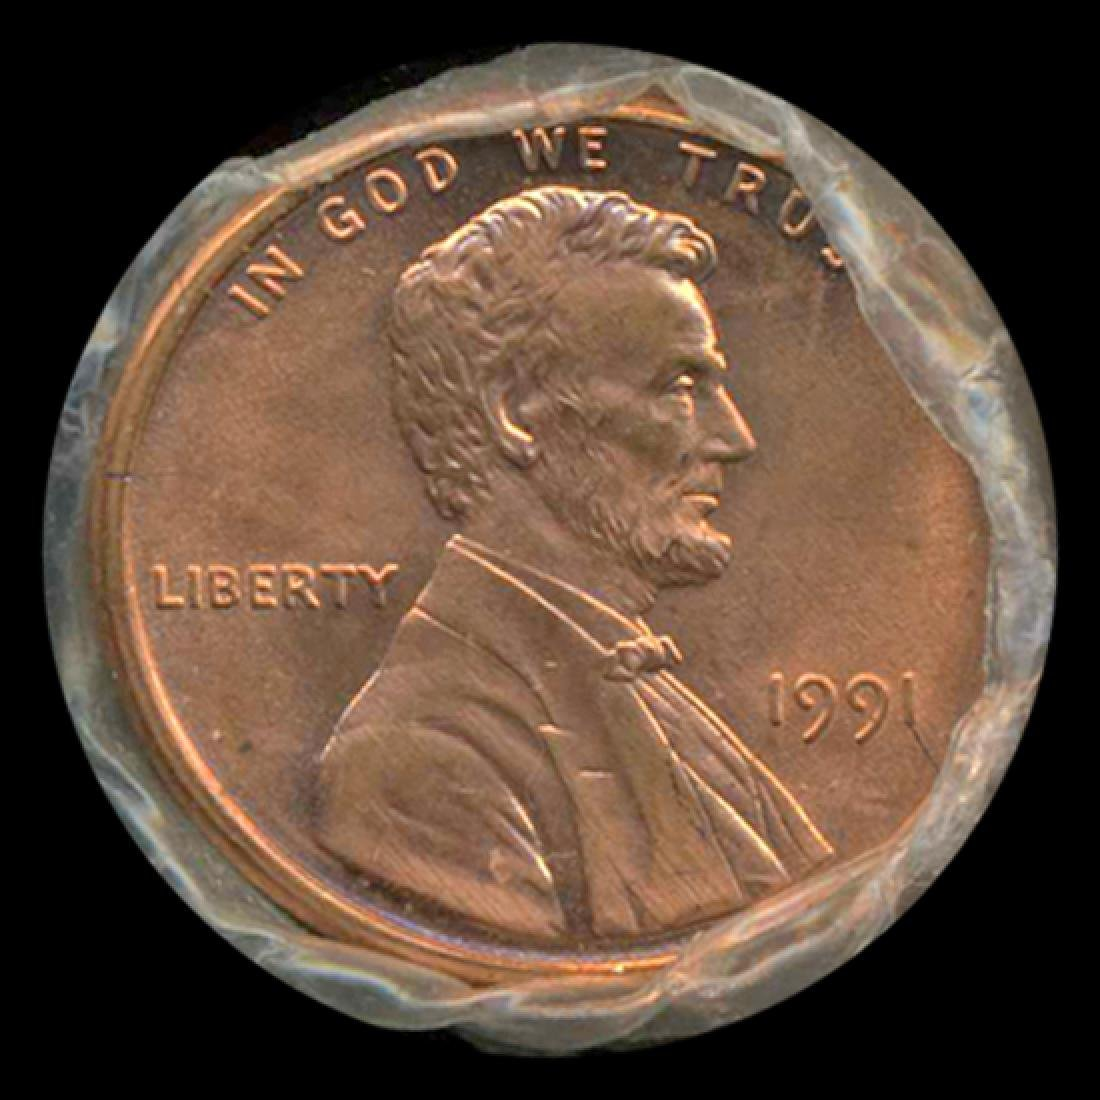 1991 Lincoln Cent Scarce Never Opened Original Bank